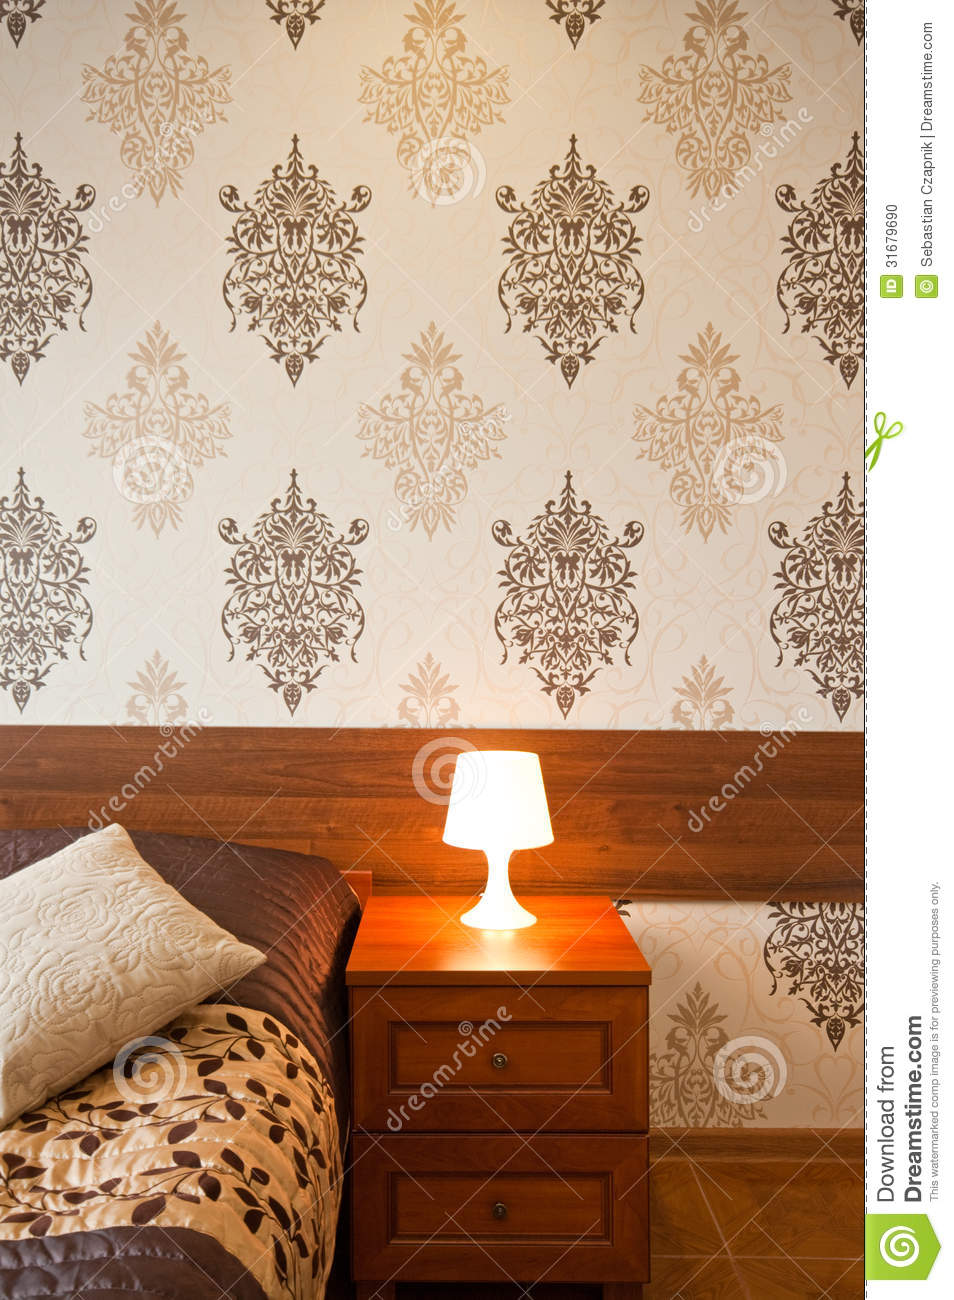 Lampe sur la table de chevet photo stock image 31679690 - Lampe table de nuit ...